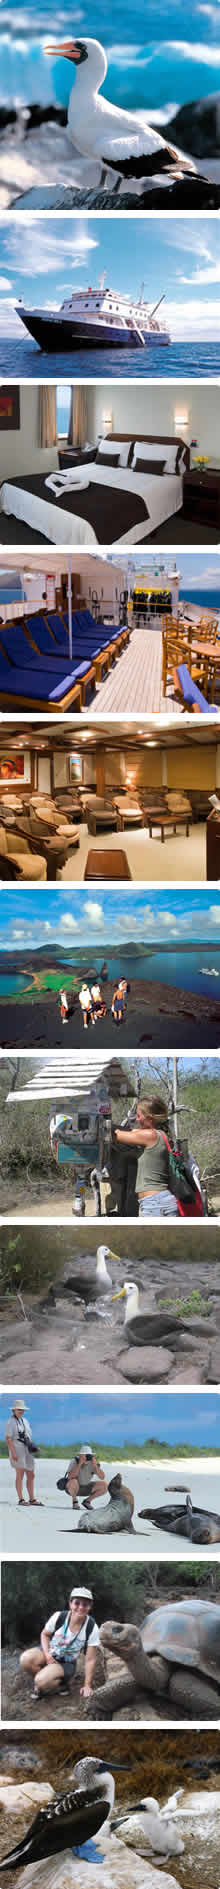 Galapagos Islands Cruises, Eclipse